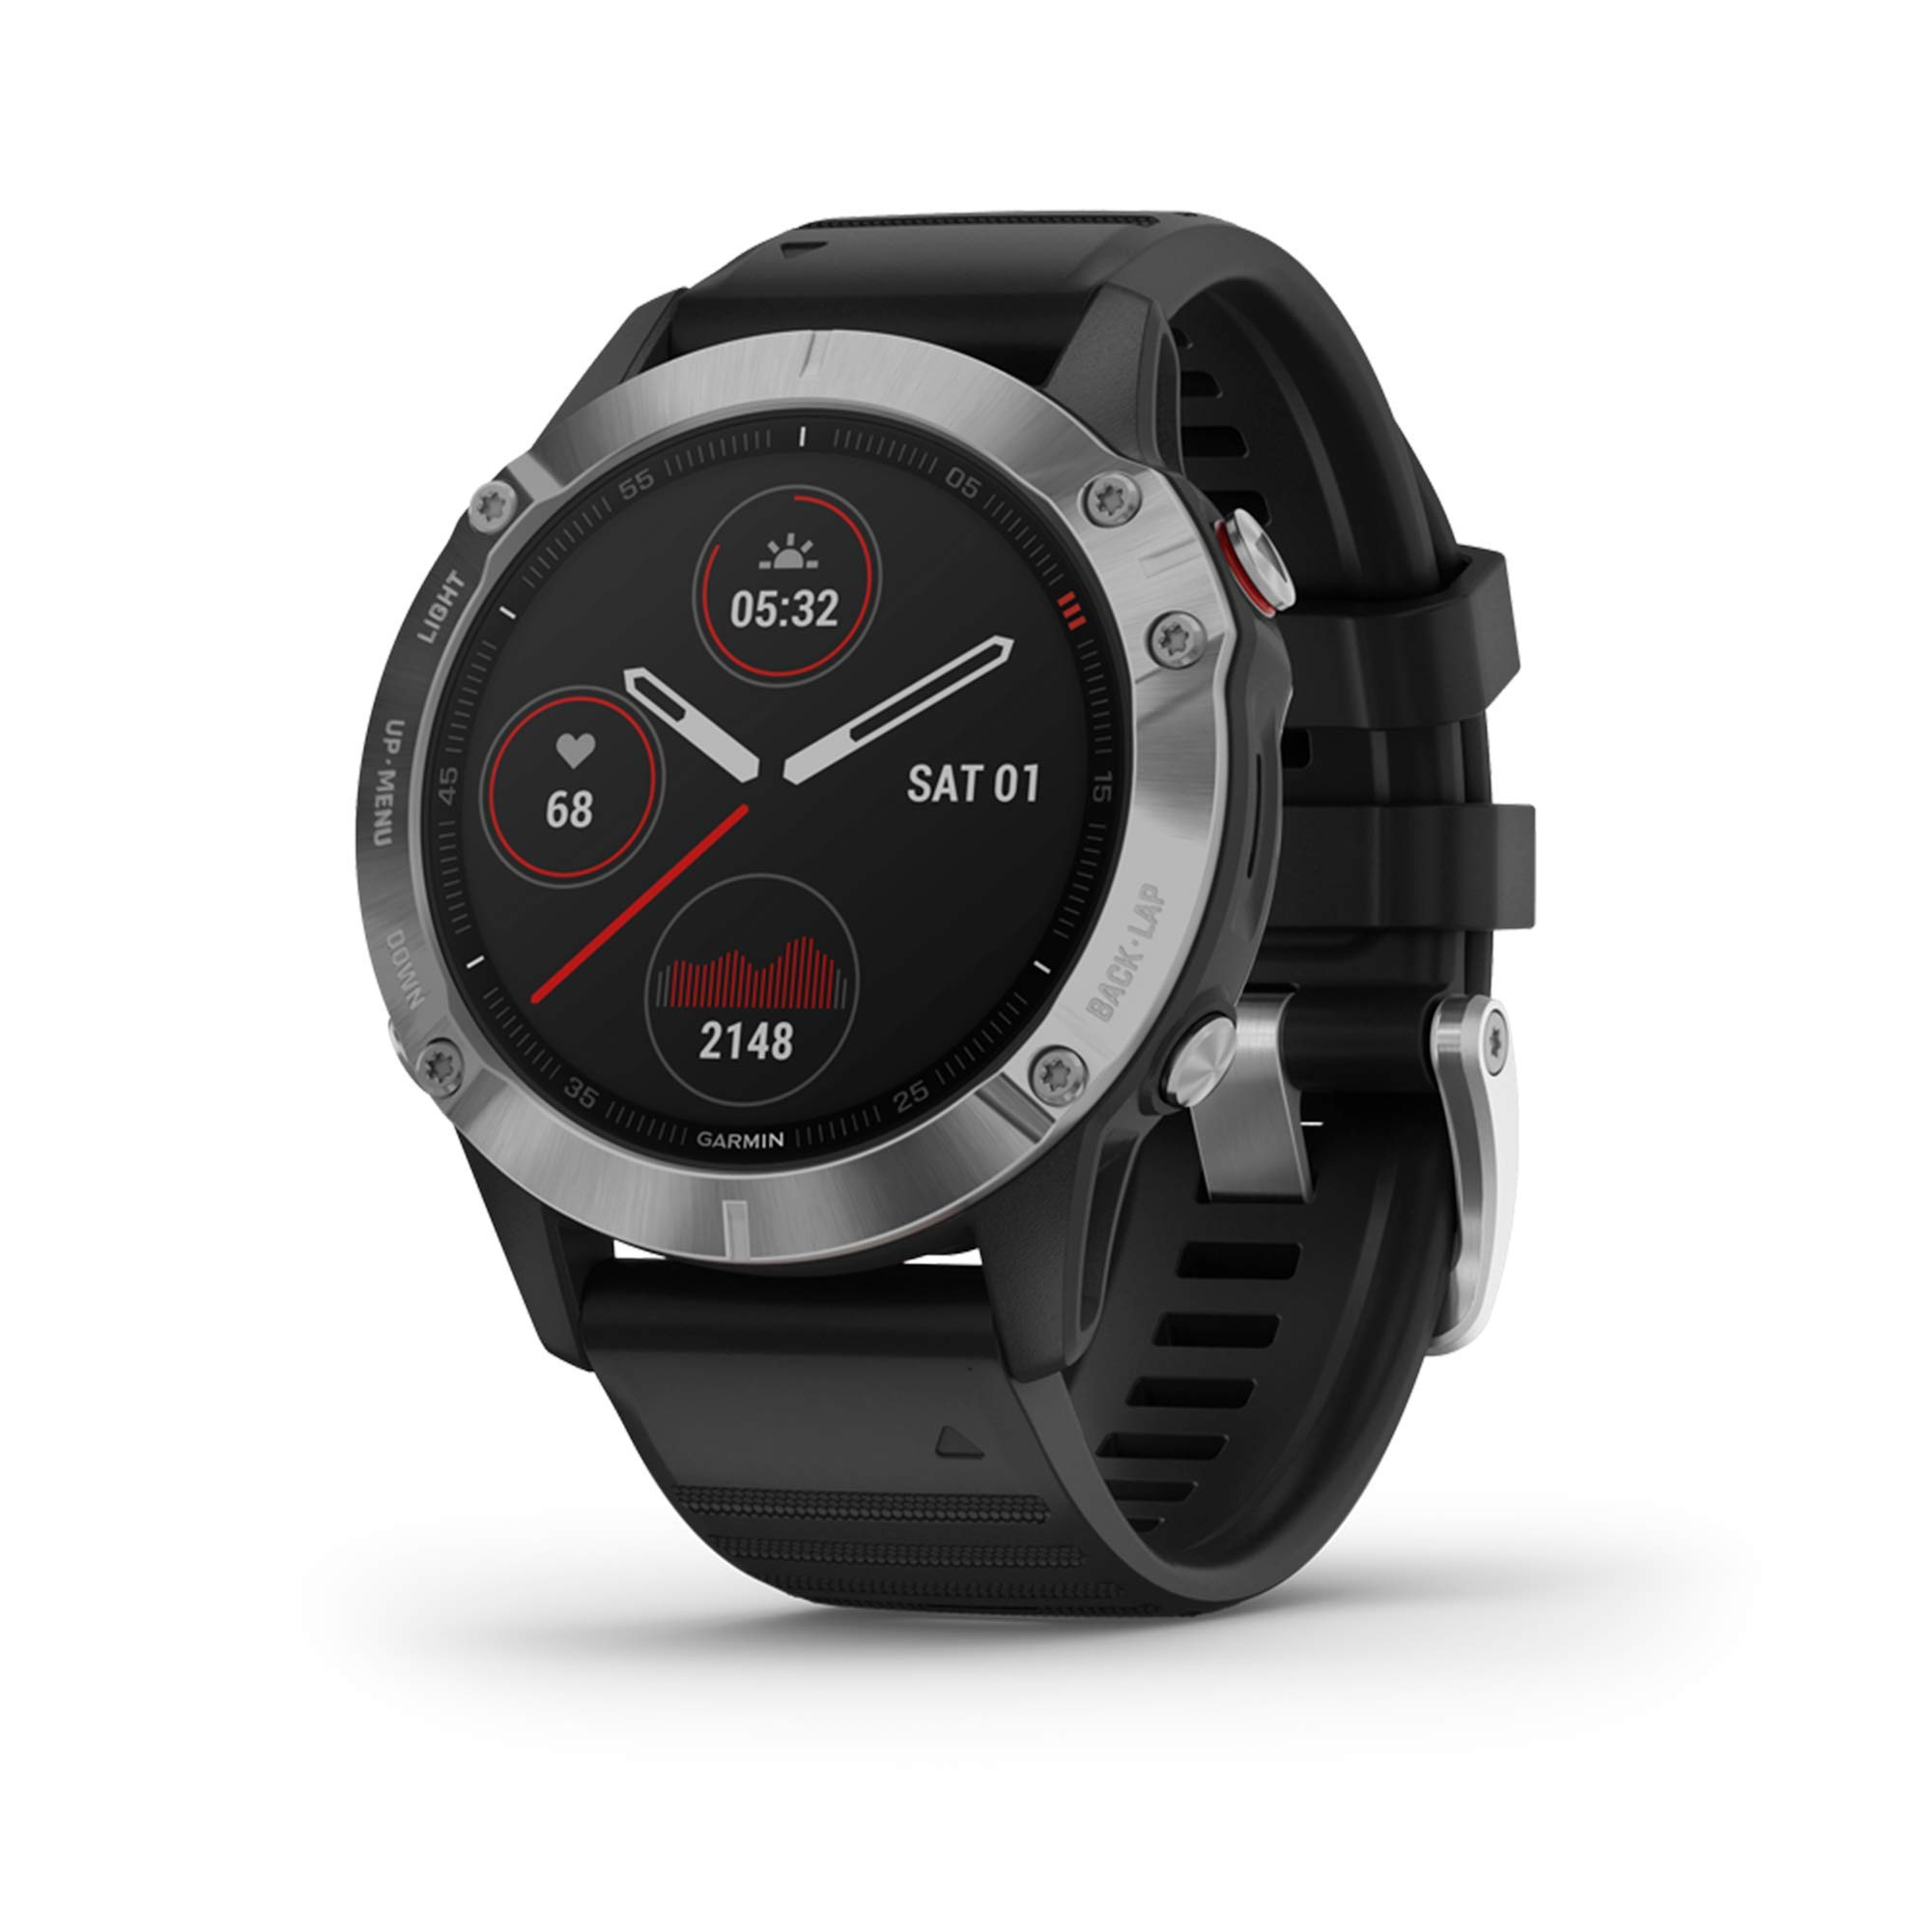 Garmin Fenix 6 Sapphire, Premium Multisport GPS Watch, features Mapping, Music, Grade-Adjusted Pace Guidance and Pulse…